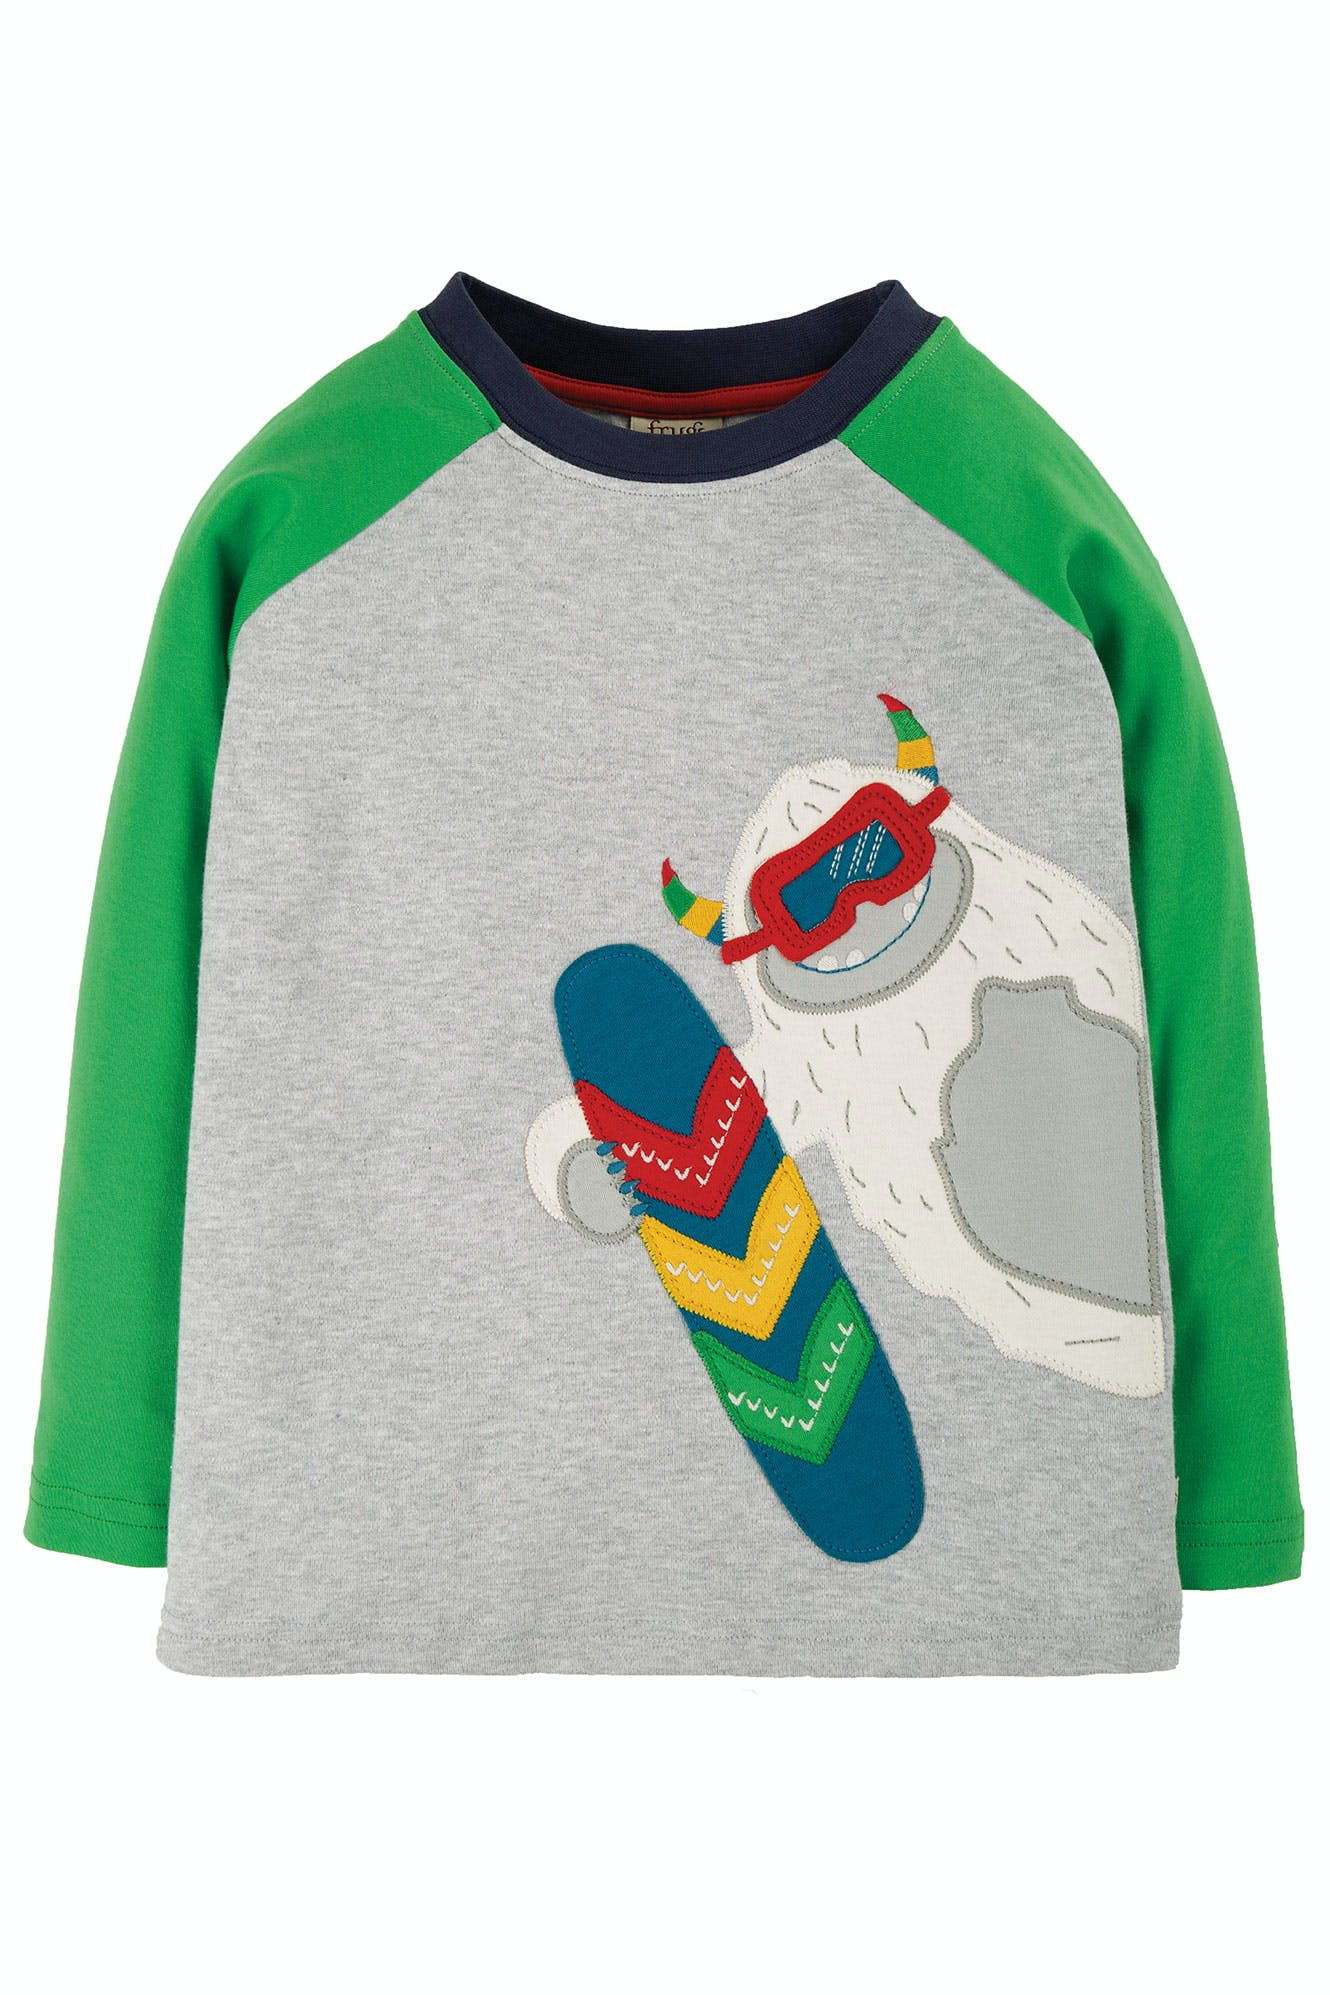 Frugi Alfie Raglan Top-Yeti/Grey Marl (was £22)